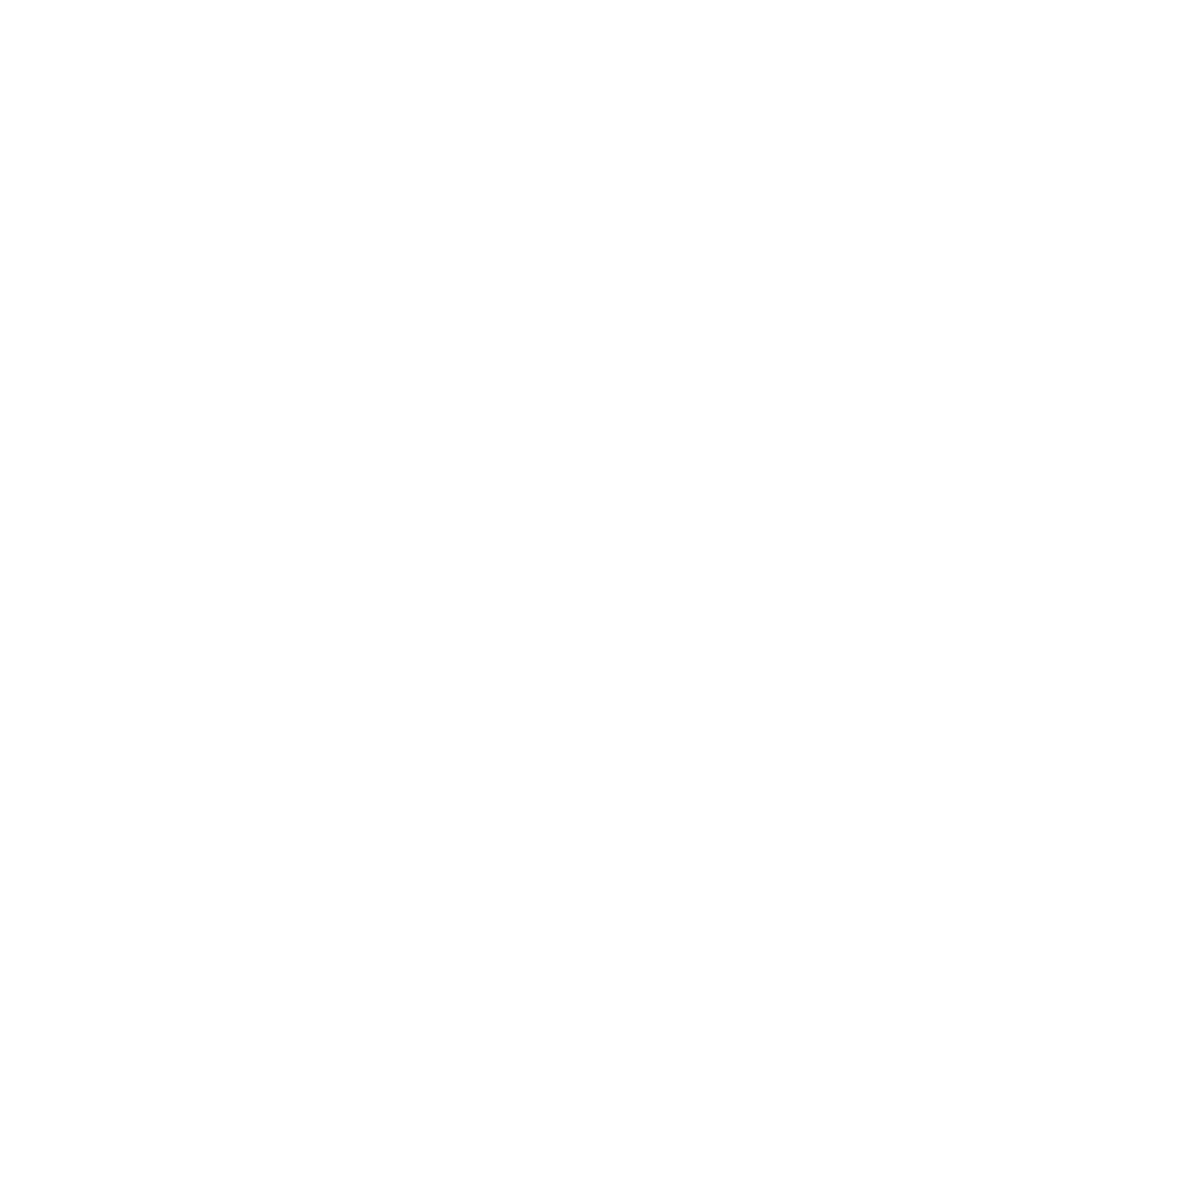 State of alaska departmenr of education and early childhood development